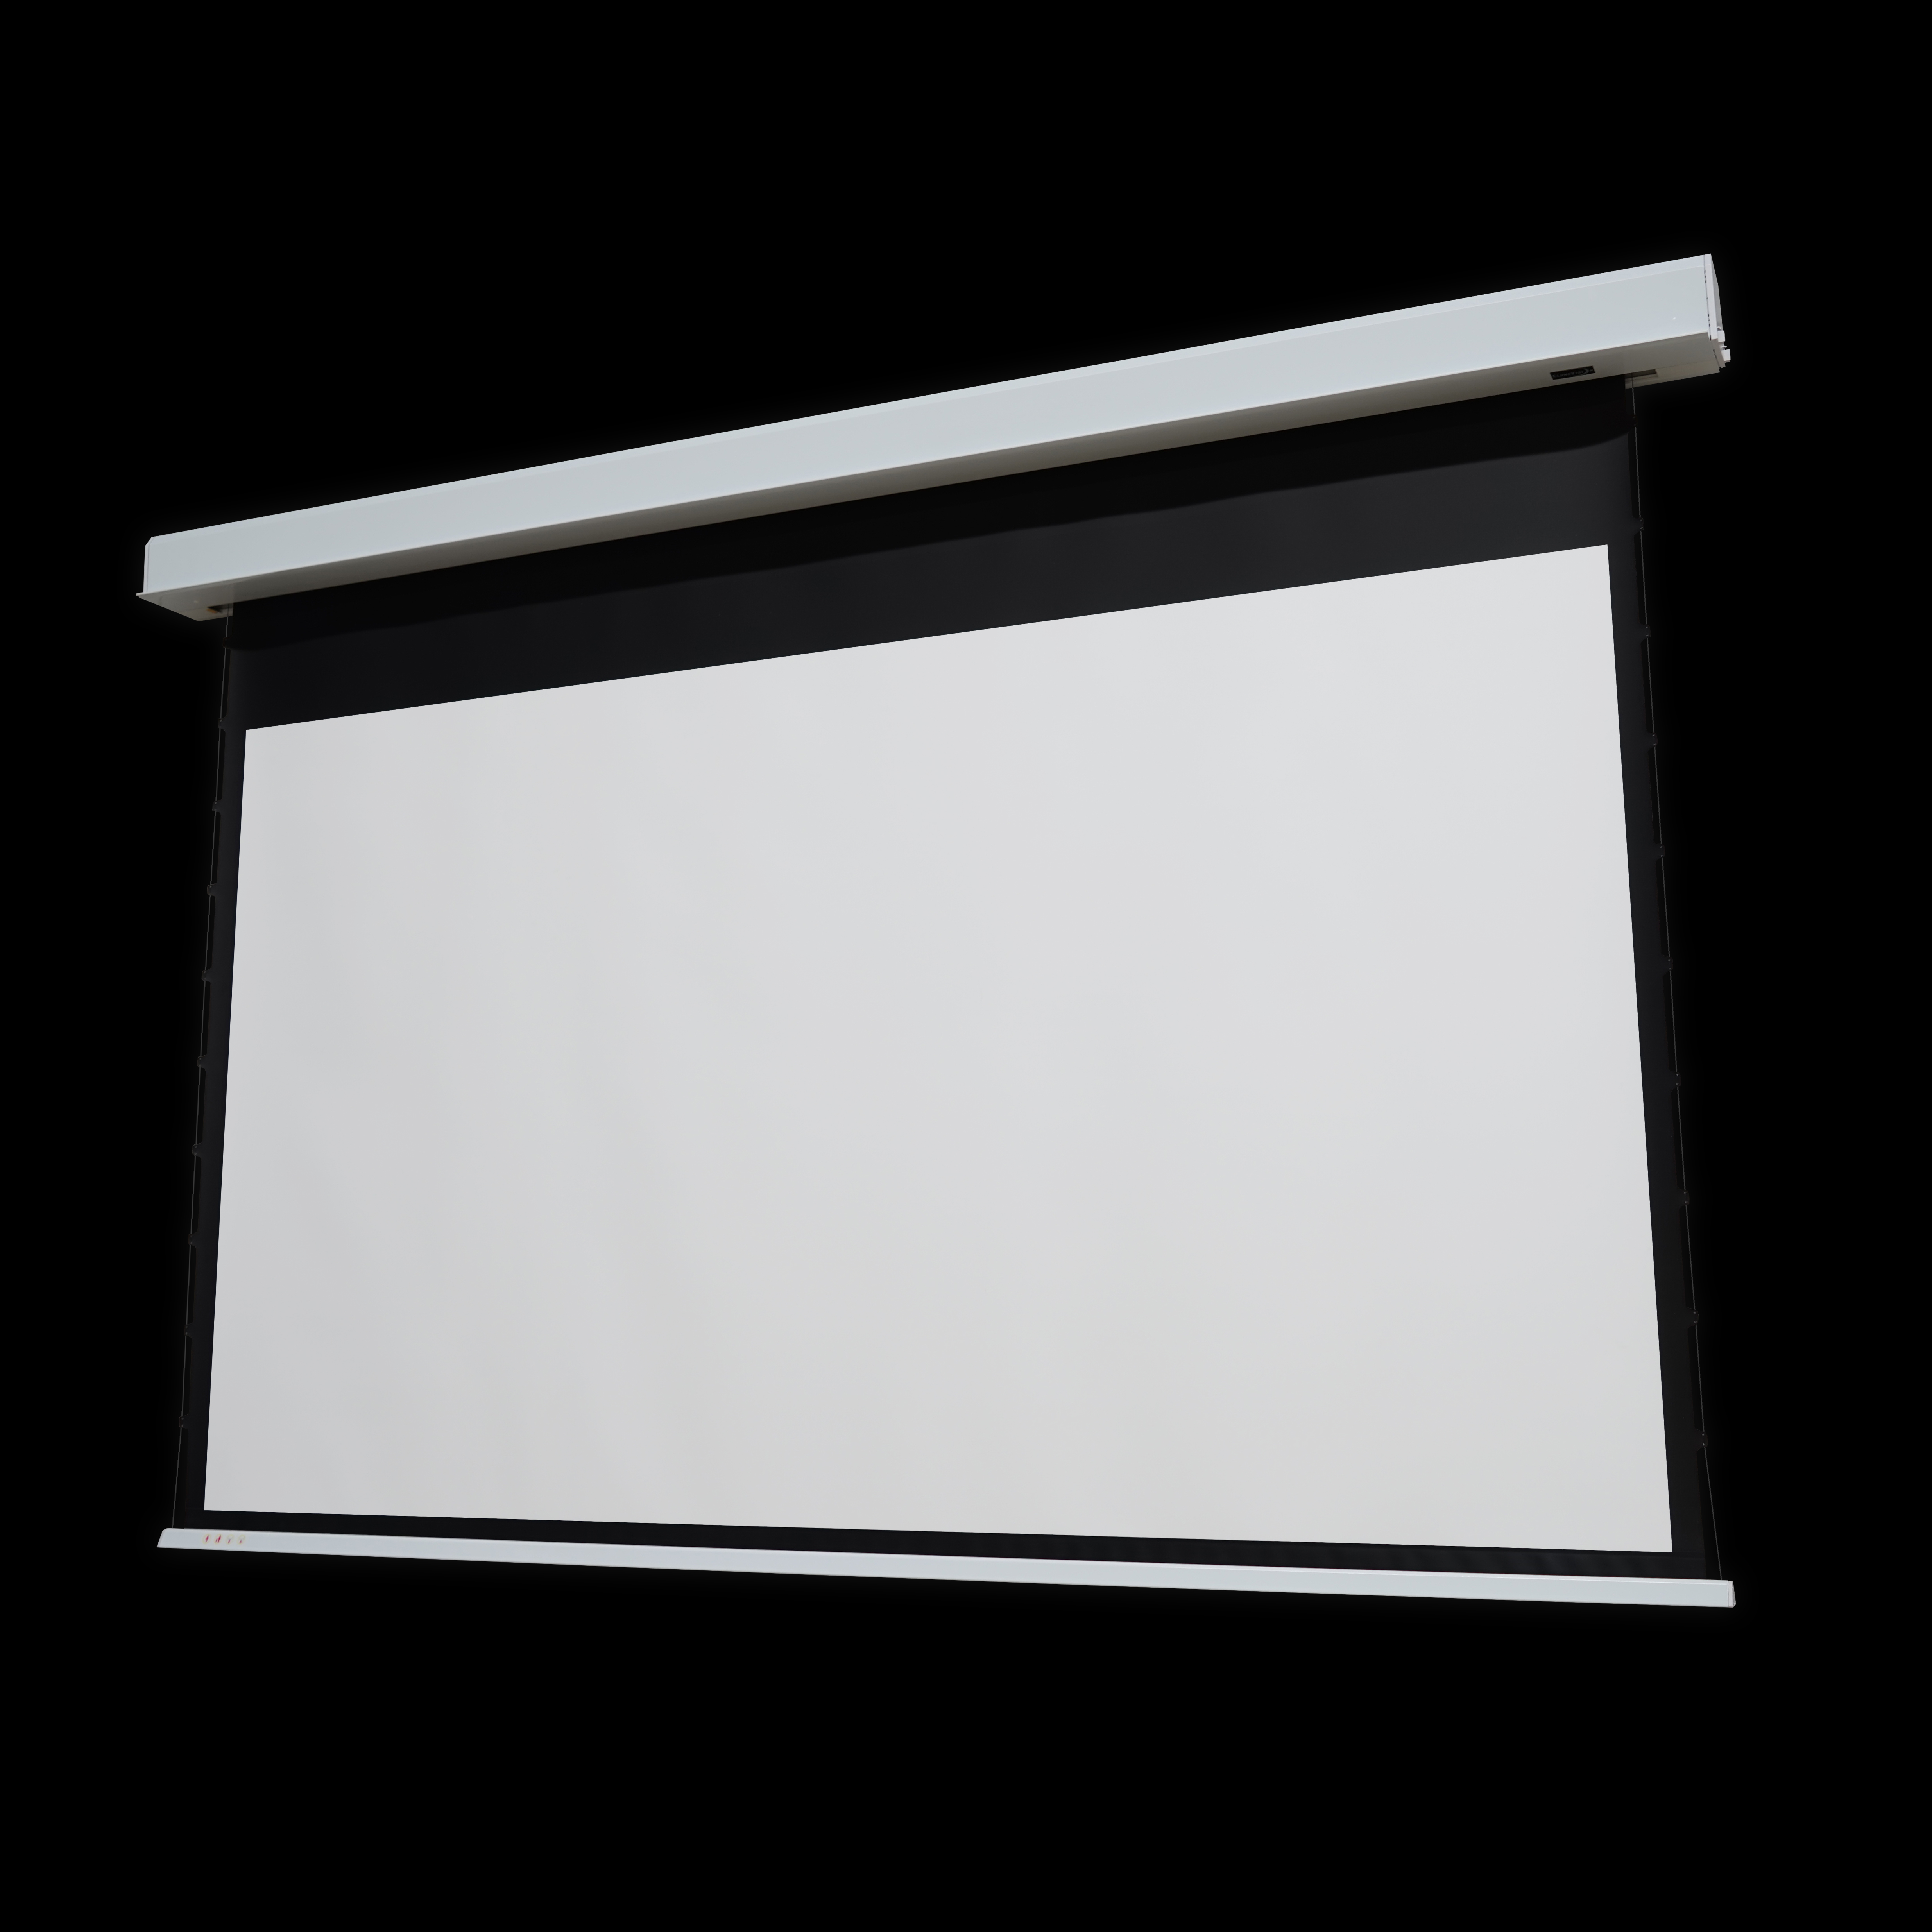 Reference Studio 4k In Ceiling Tab Tensioned Elunevision